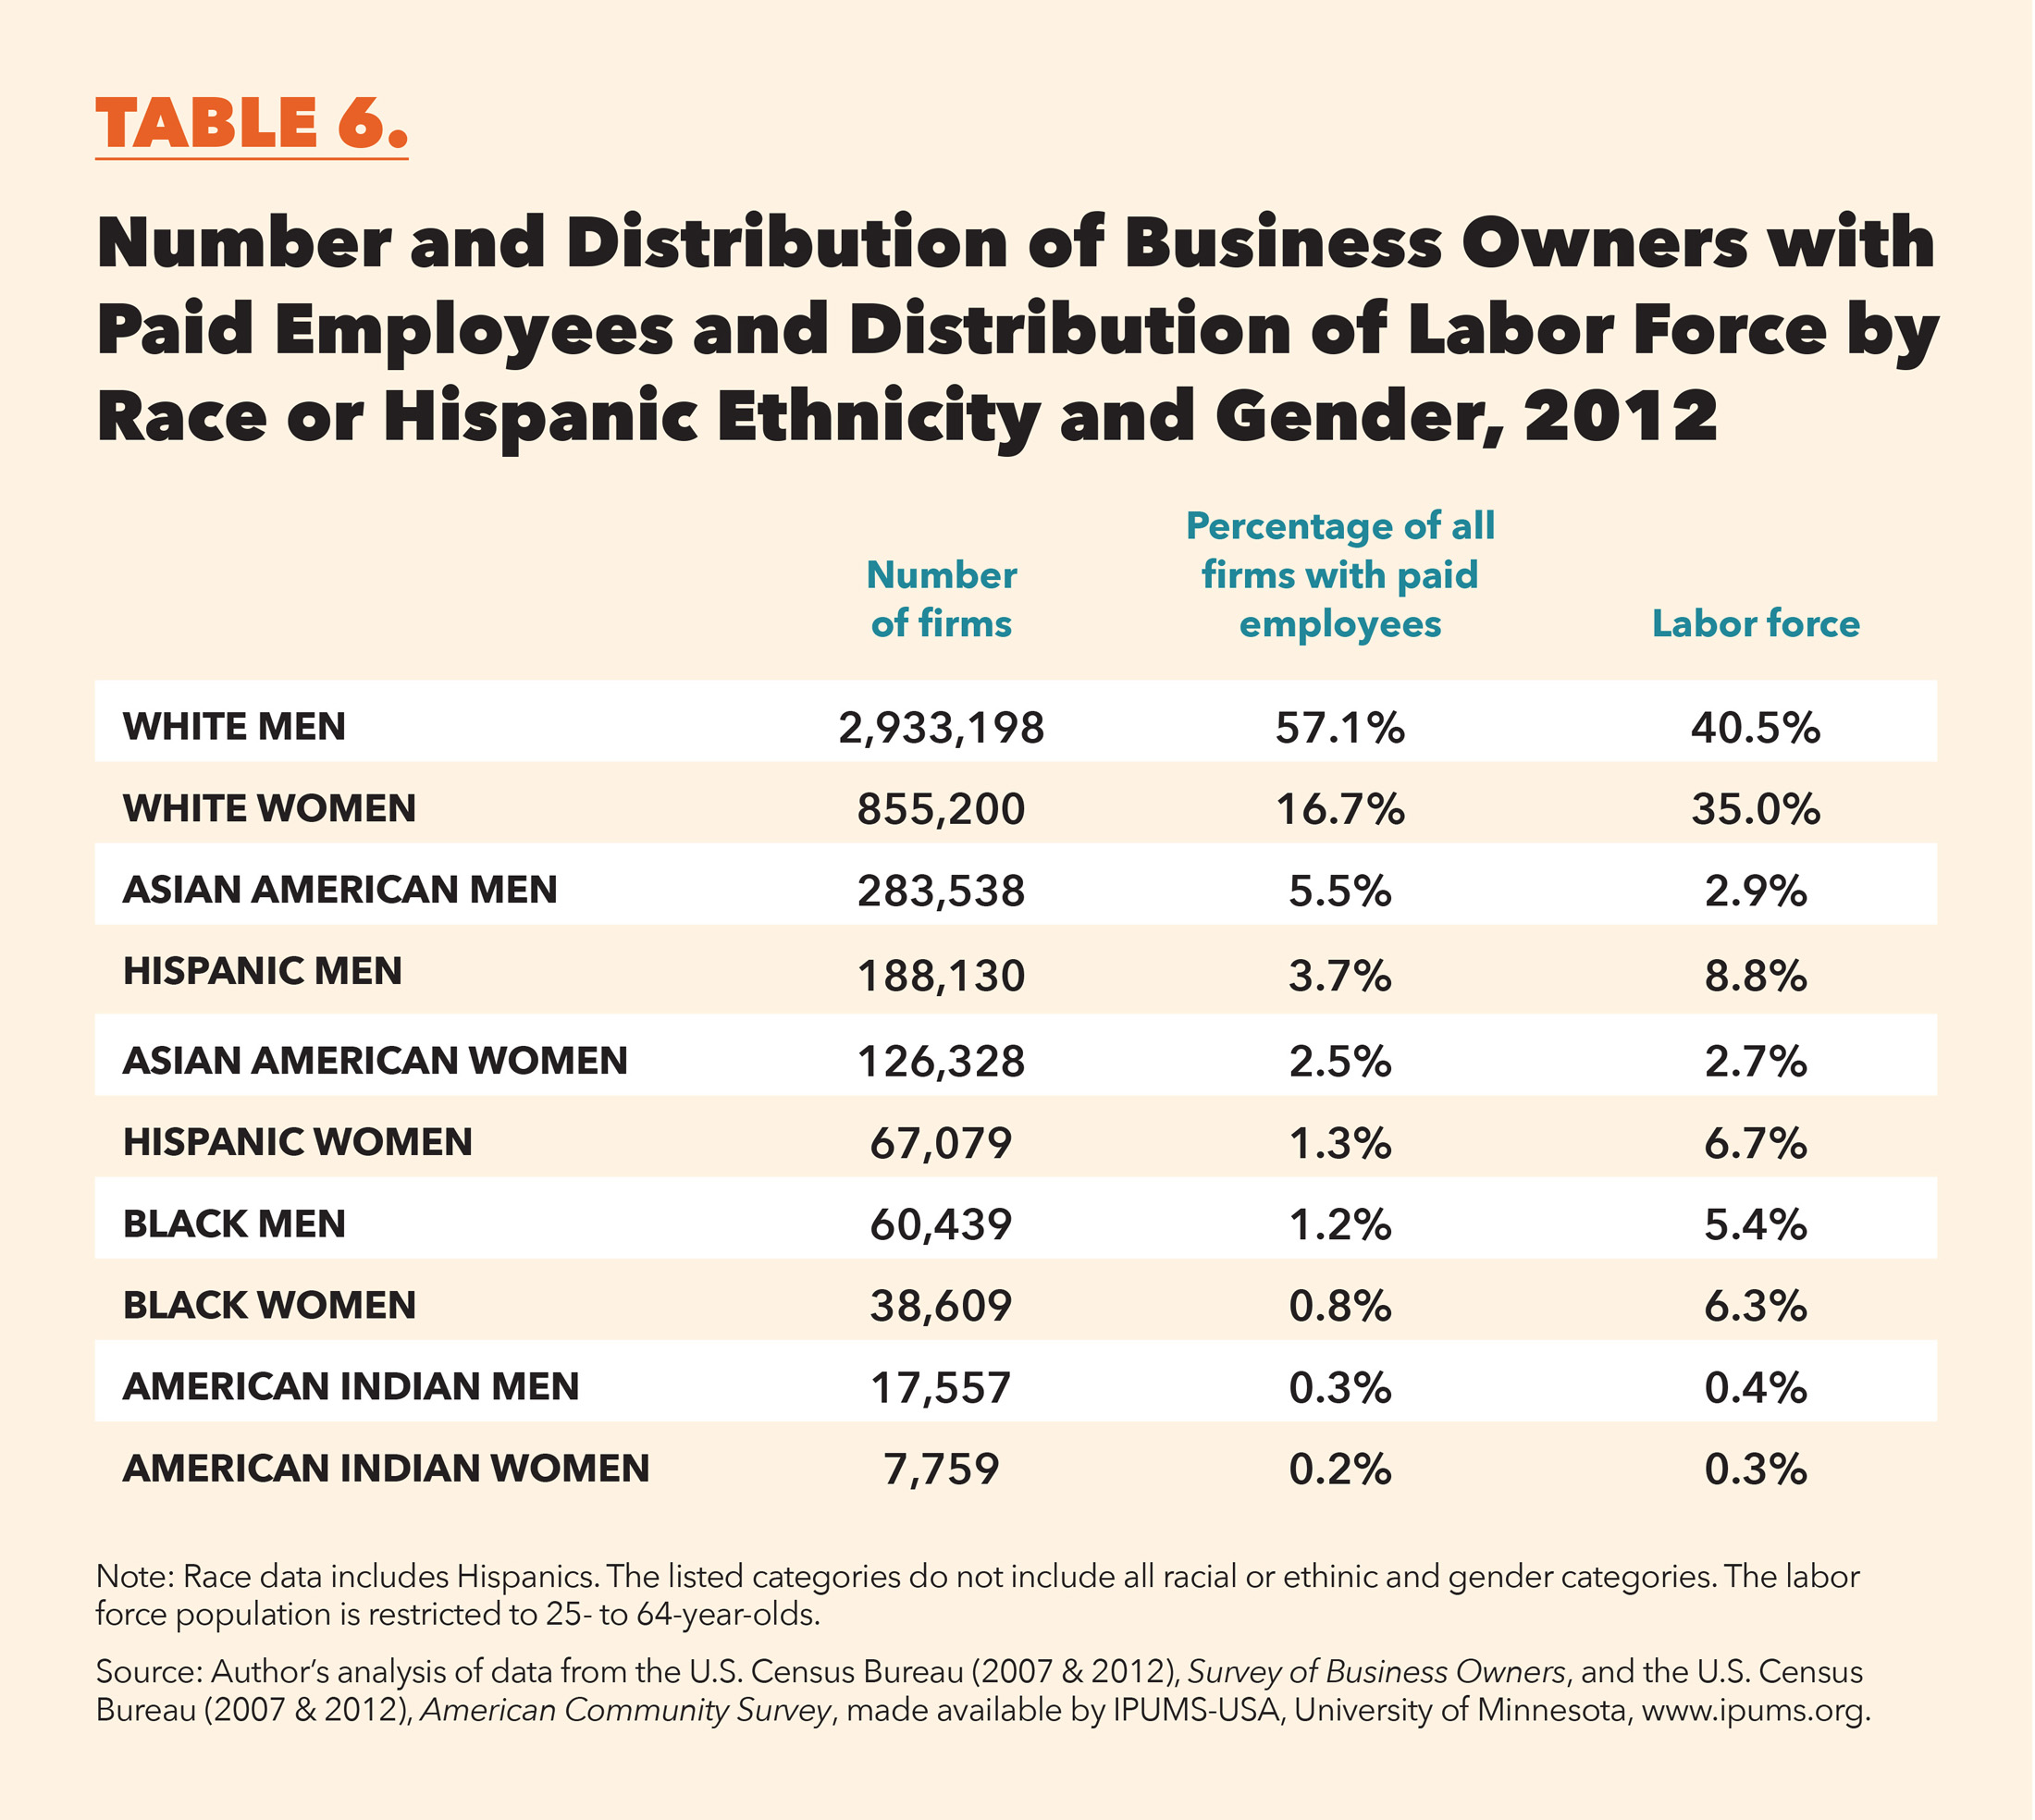 center for global policy solutions the color of entrepreneurship asian american women are underrepresented relative to their share of the labor force in 2012 they owned 2 5 percent of all firms employees and they